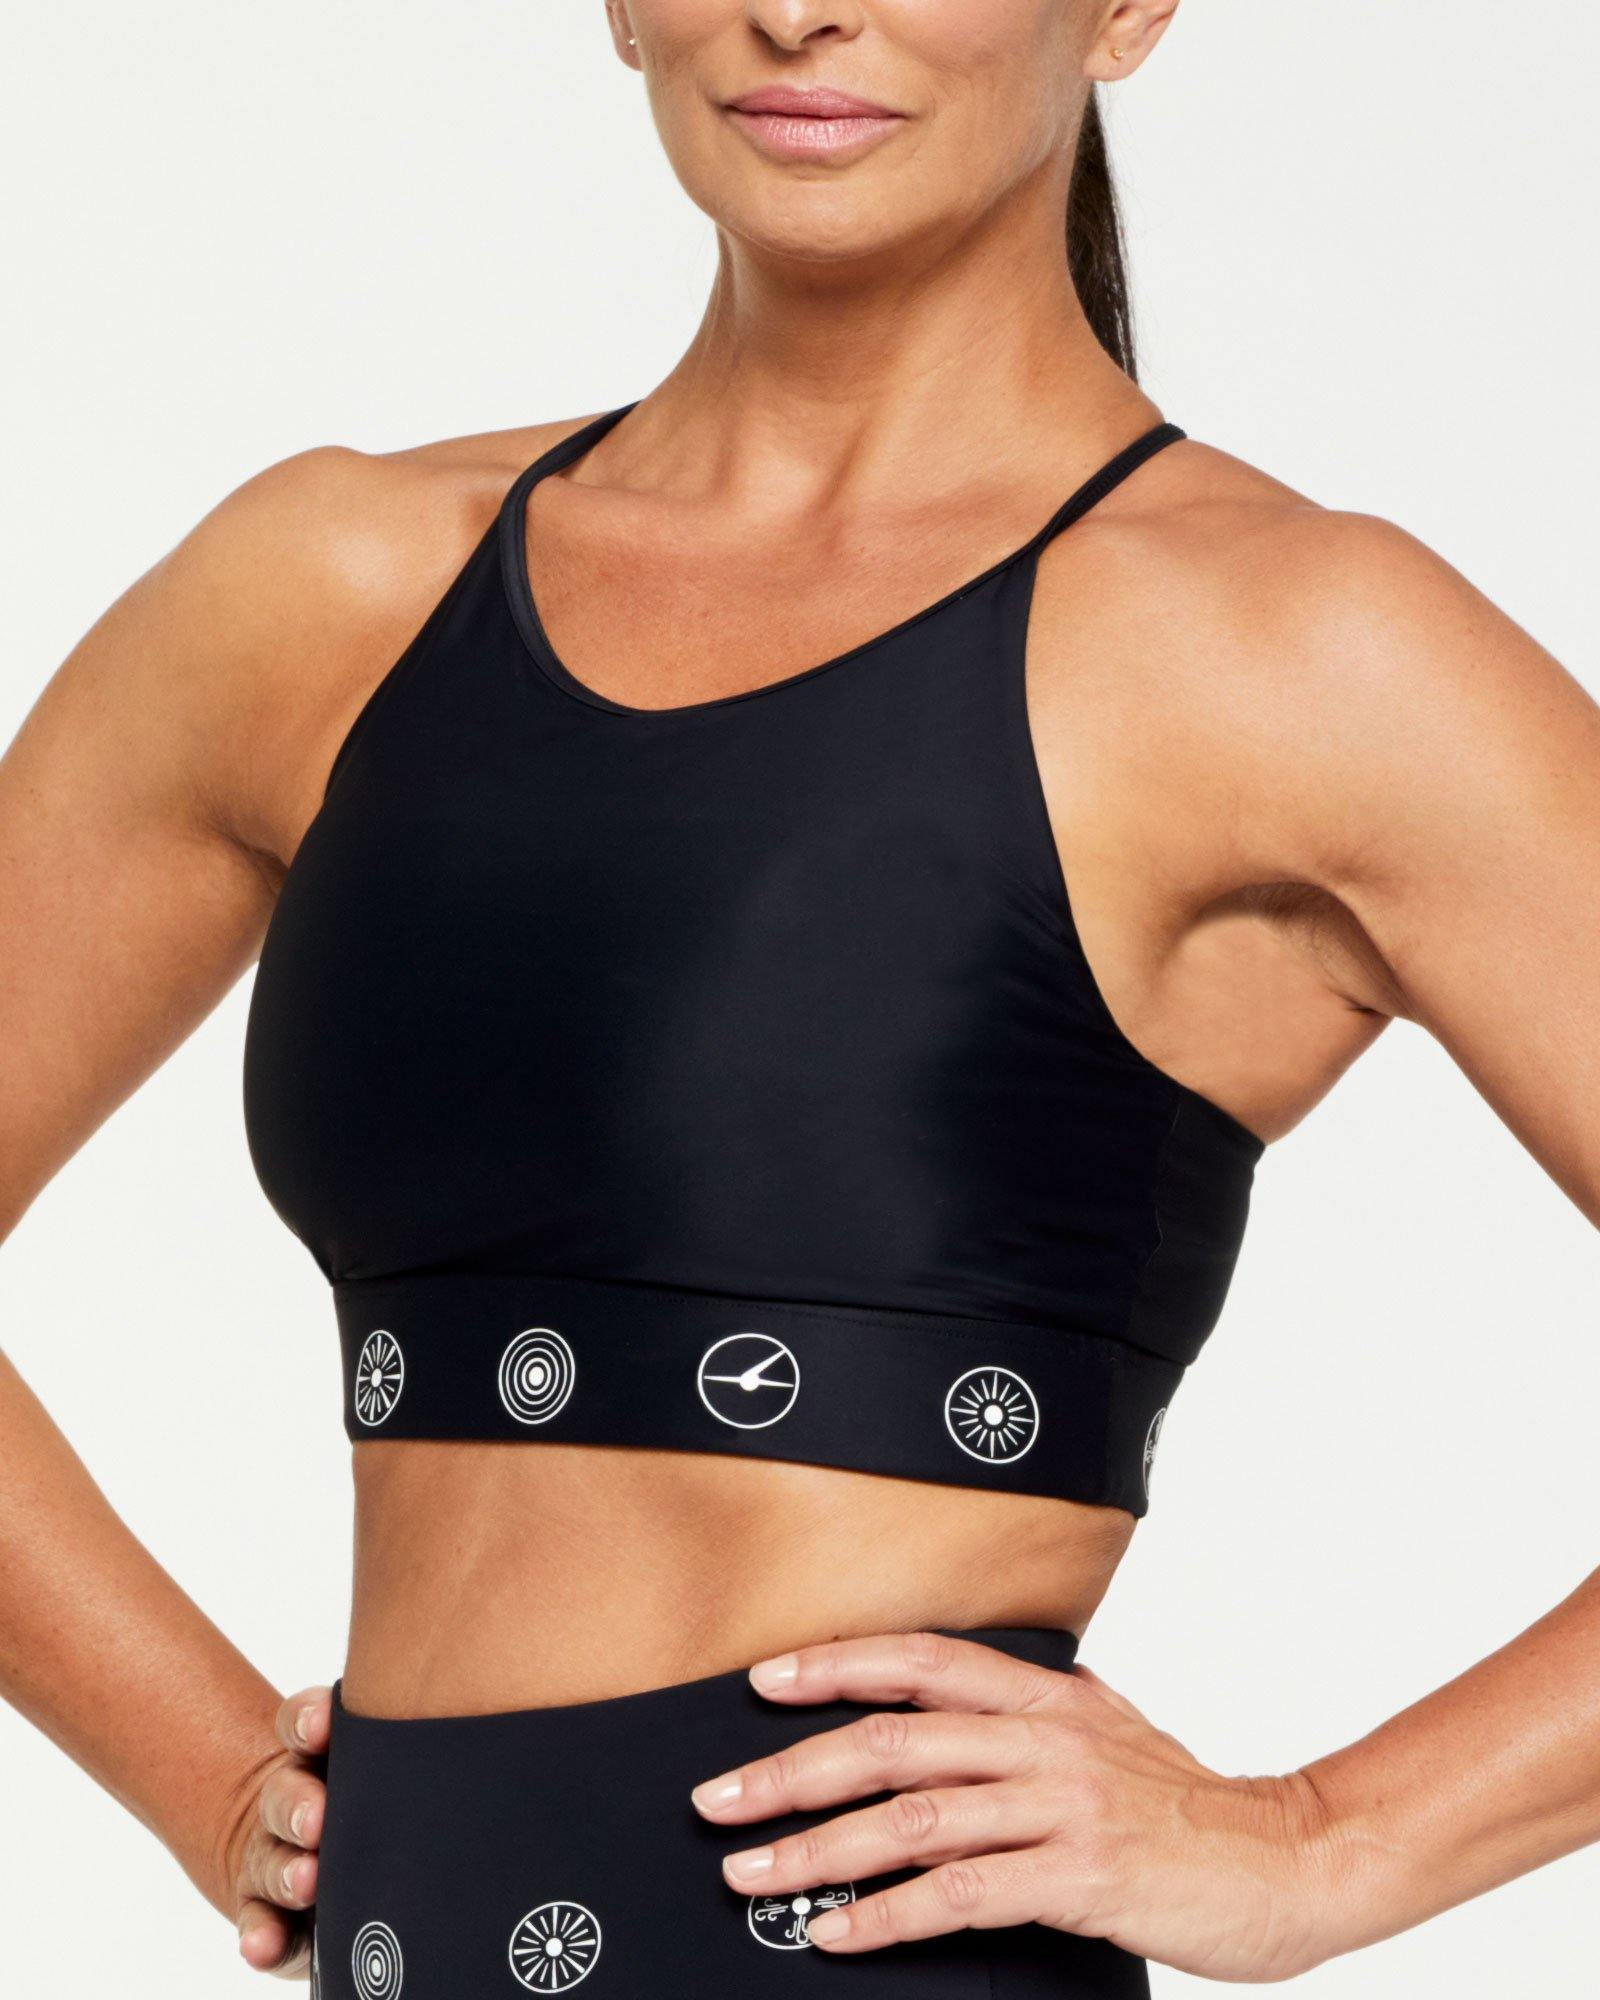 Companion Trapezius Halter Crop Top, Black and White symbols, side view